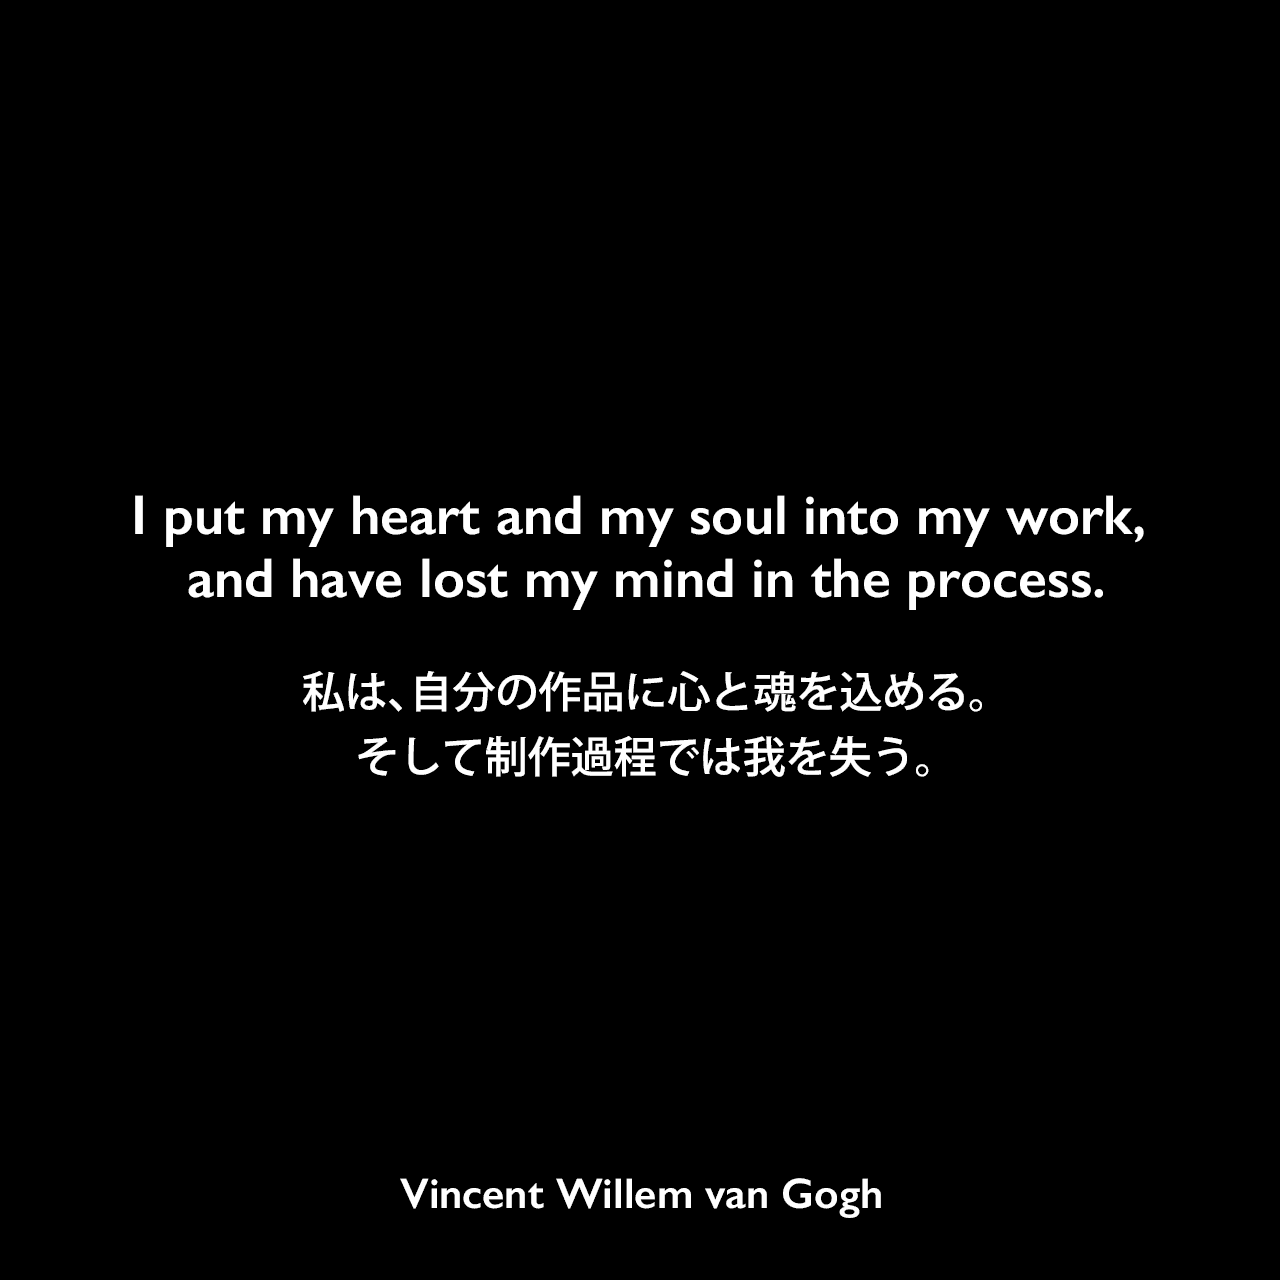 I put my heart and my soul into my work, and have lost my mind in the process.私は、自分の作品に心と魂を込める。そして制作過程では我を失う。Vincent Willem van Gogh